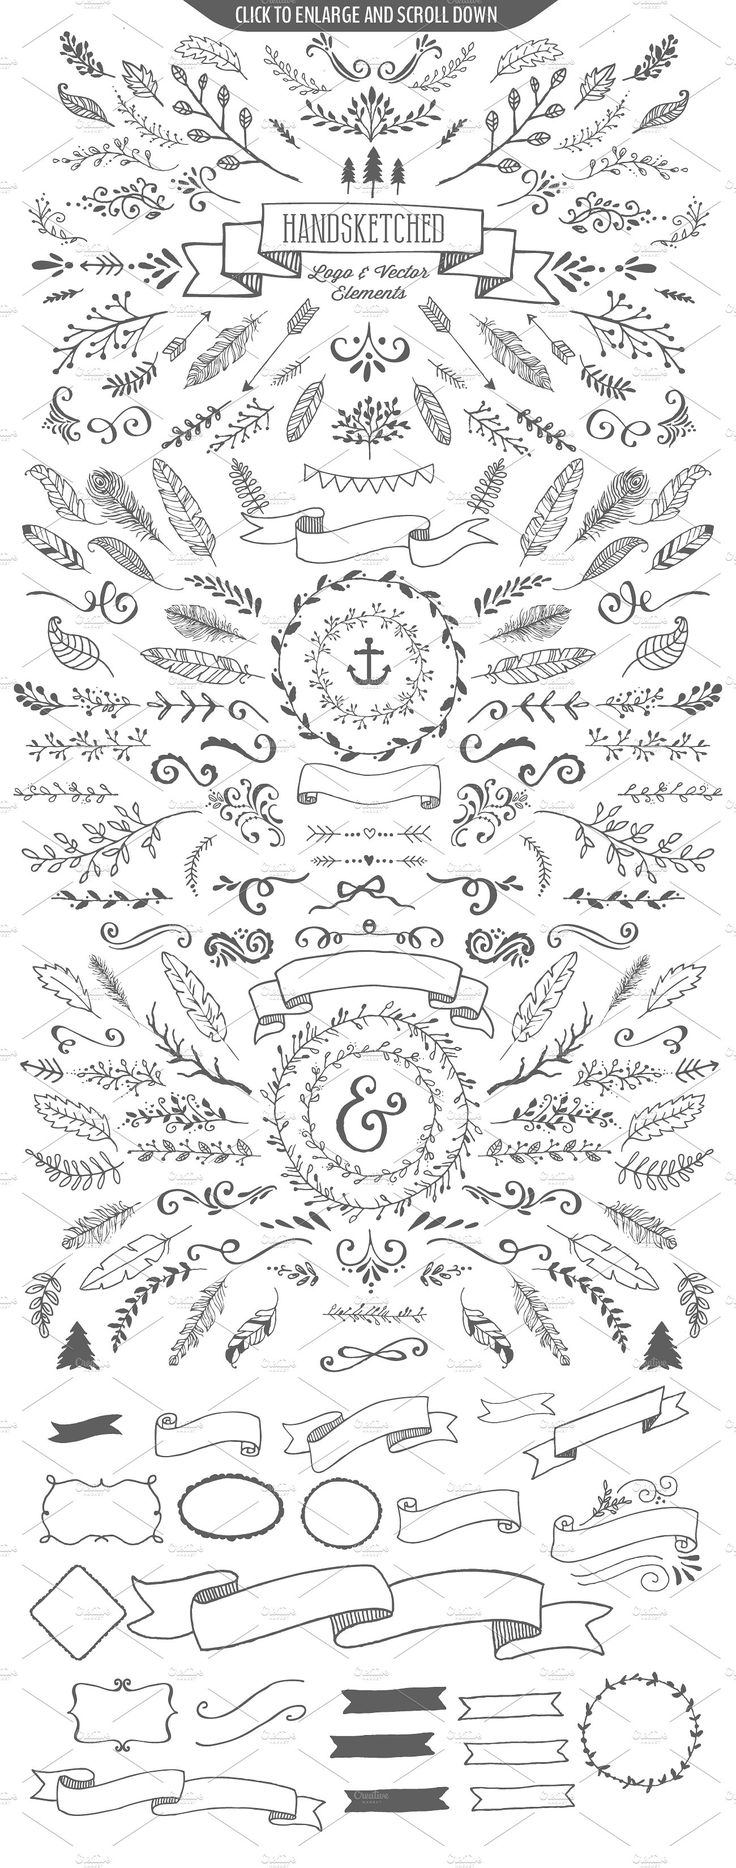 HandSketched Vector Elements Pack by Nicky Laatz on @creativemarket